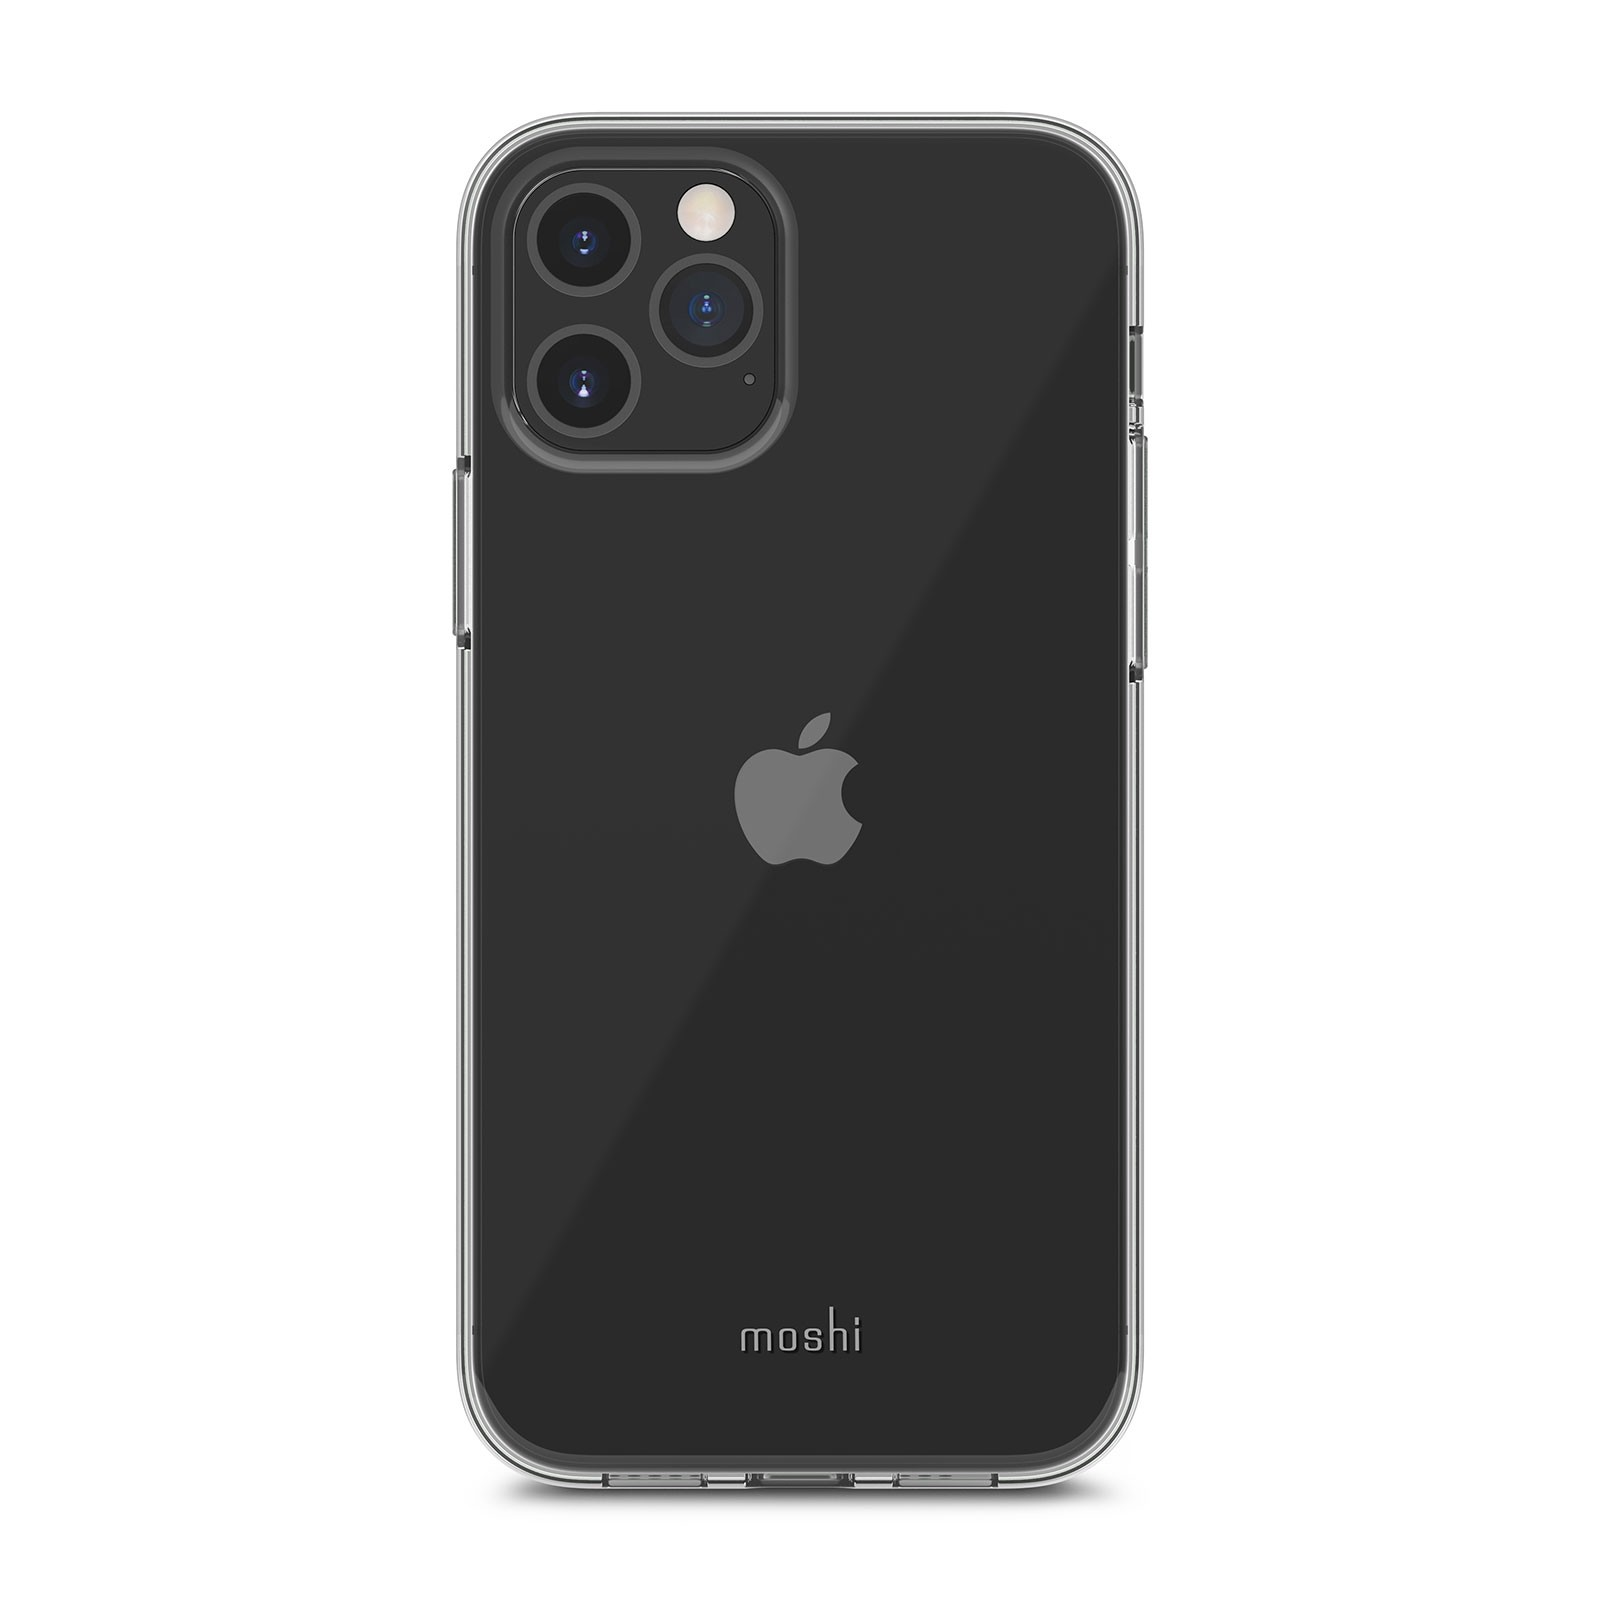 Moshi Vitros Clear Case for iPhone 12/12 Pro - Crystal Clear, 99MO128902